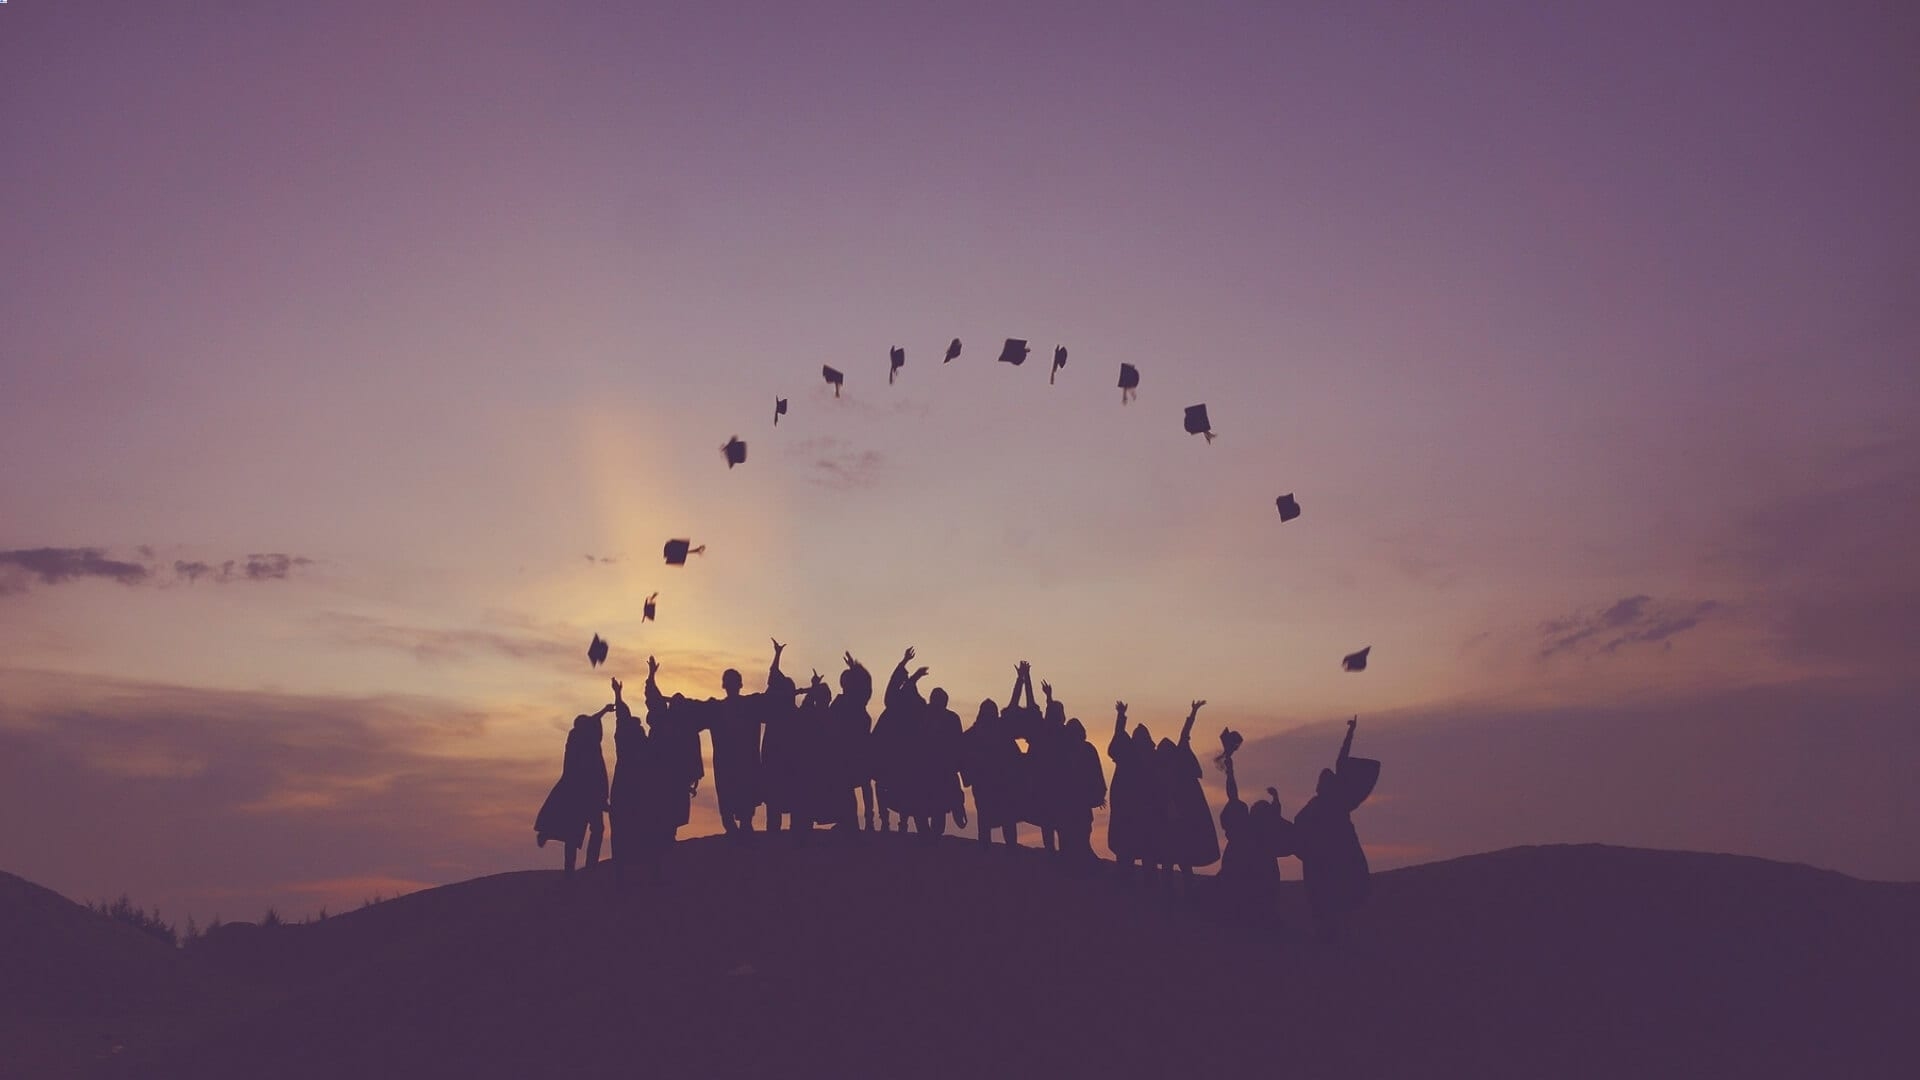 A group of people is standing on a hill and throwing their hats in the air in a cirlce during sunset in Asia.